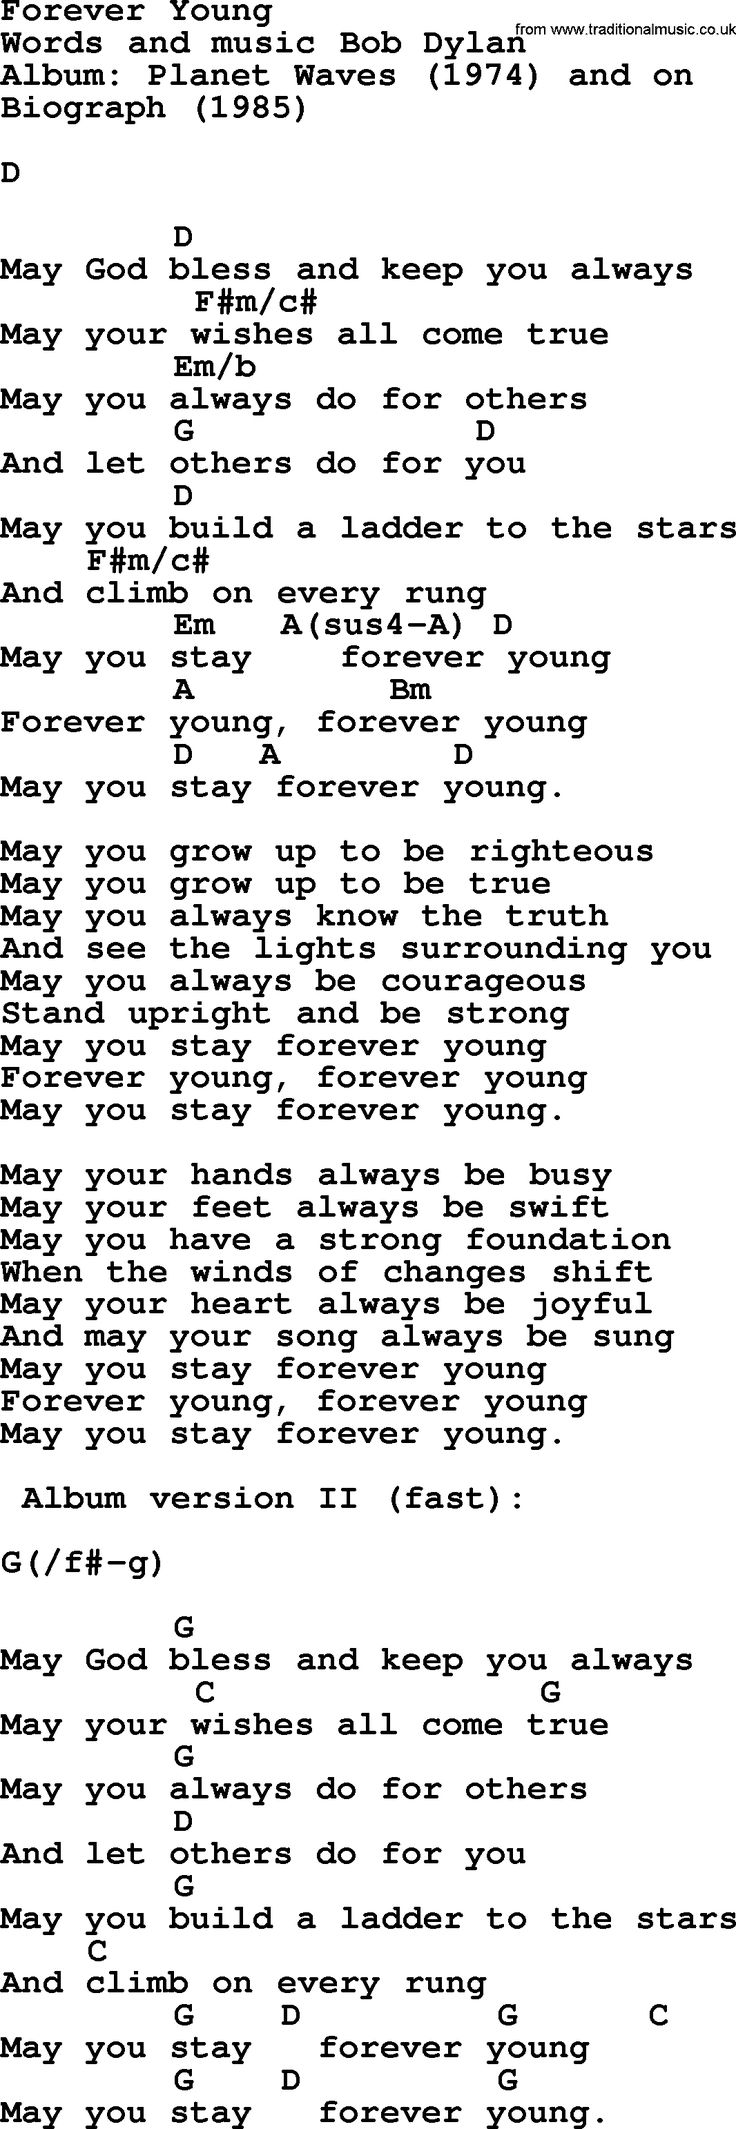 Song lyrics for forever young